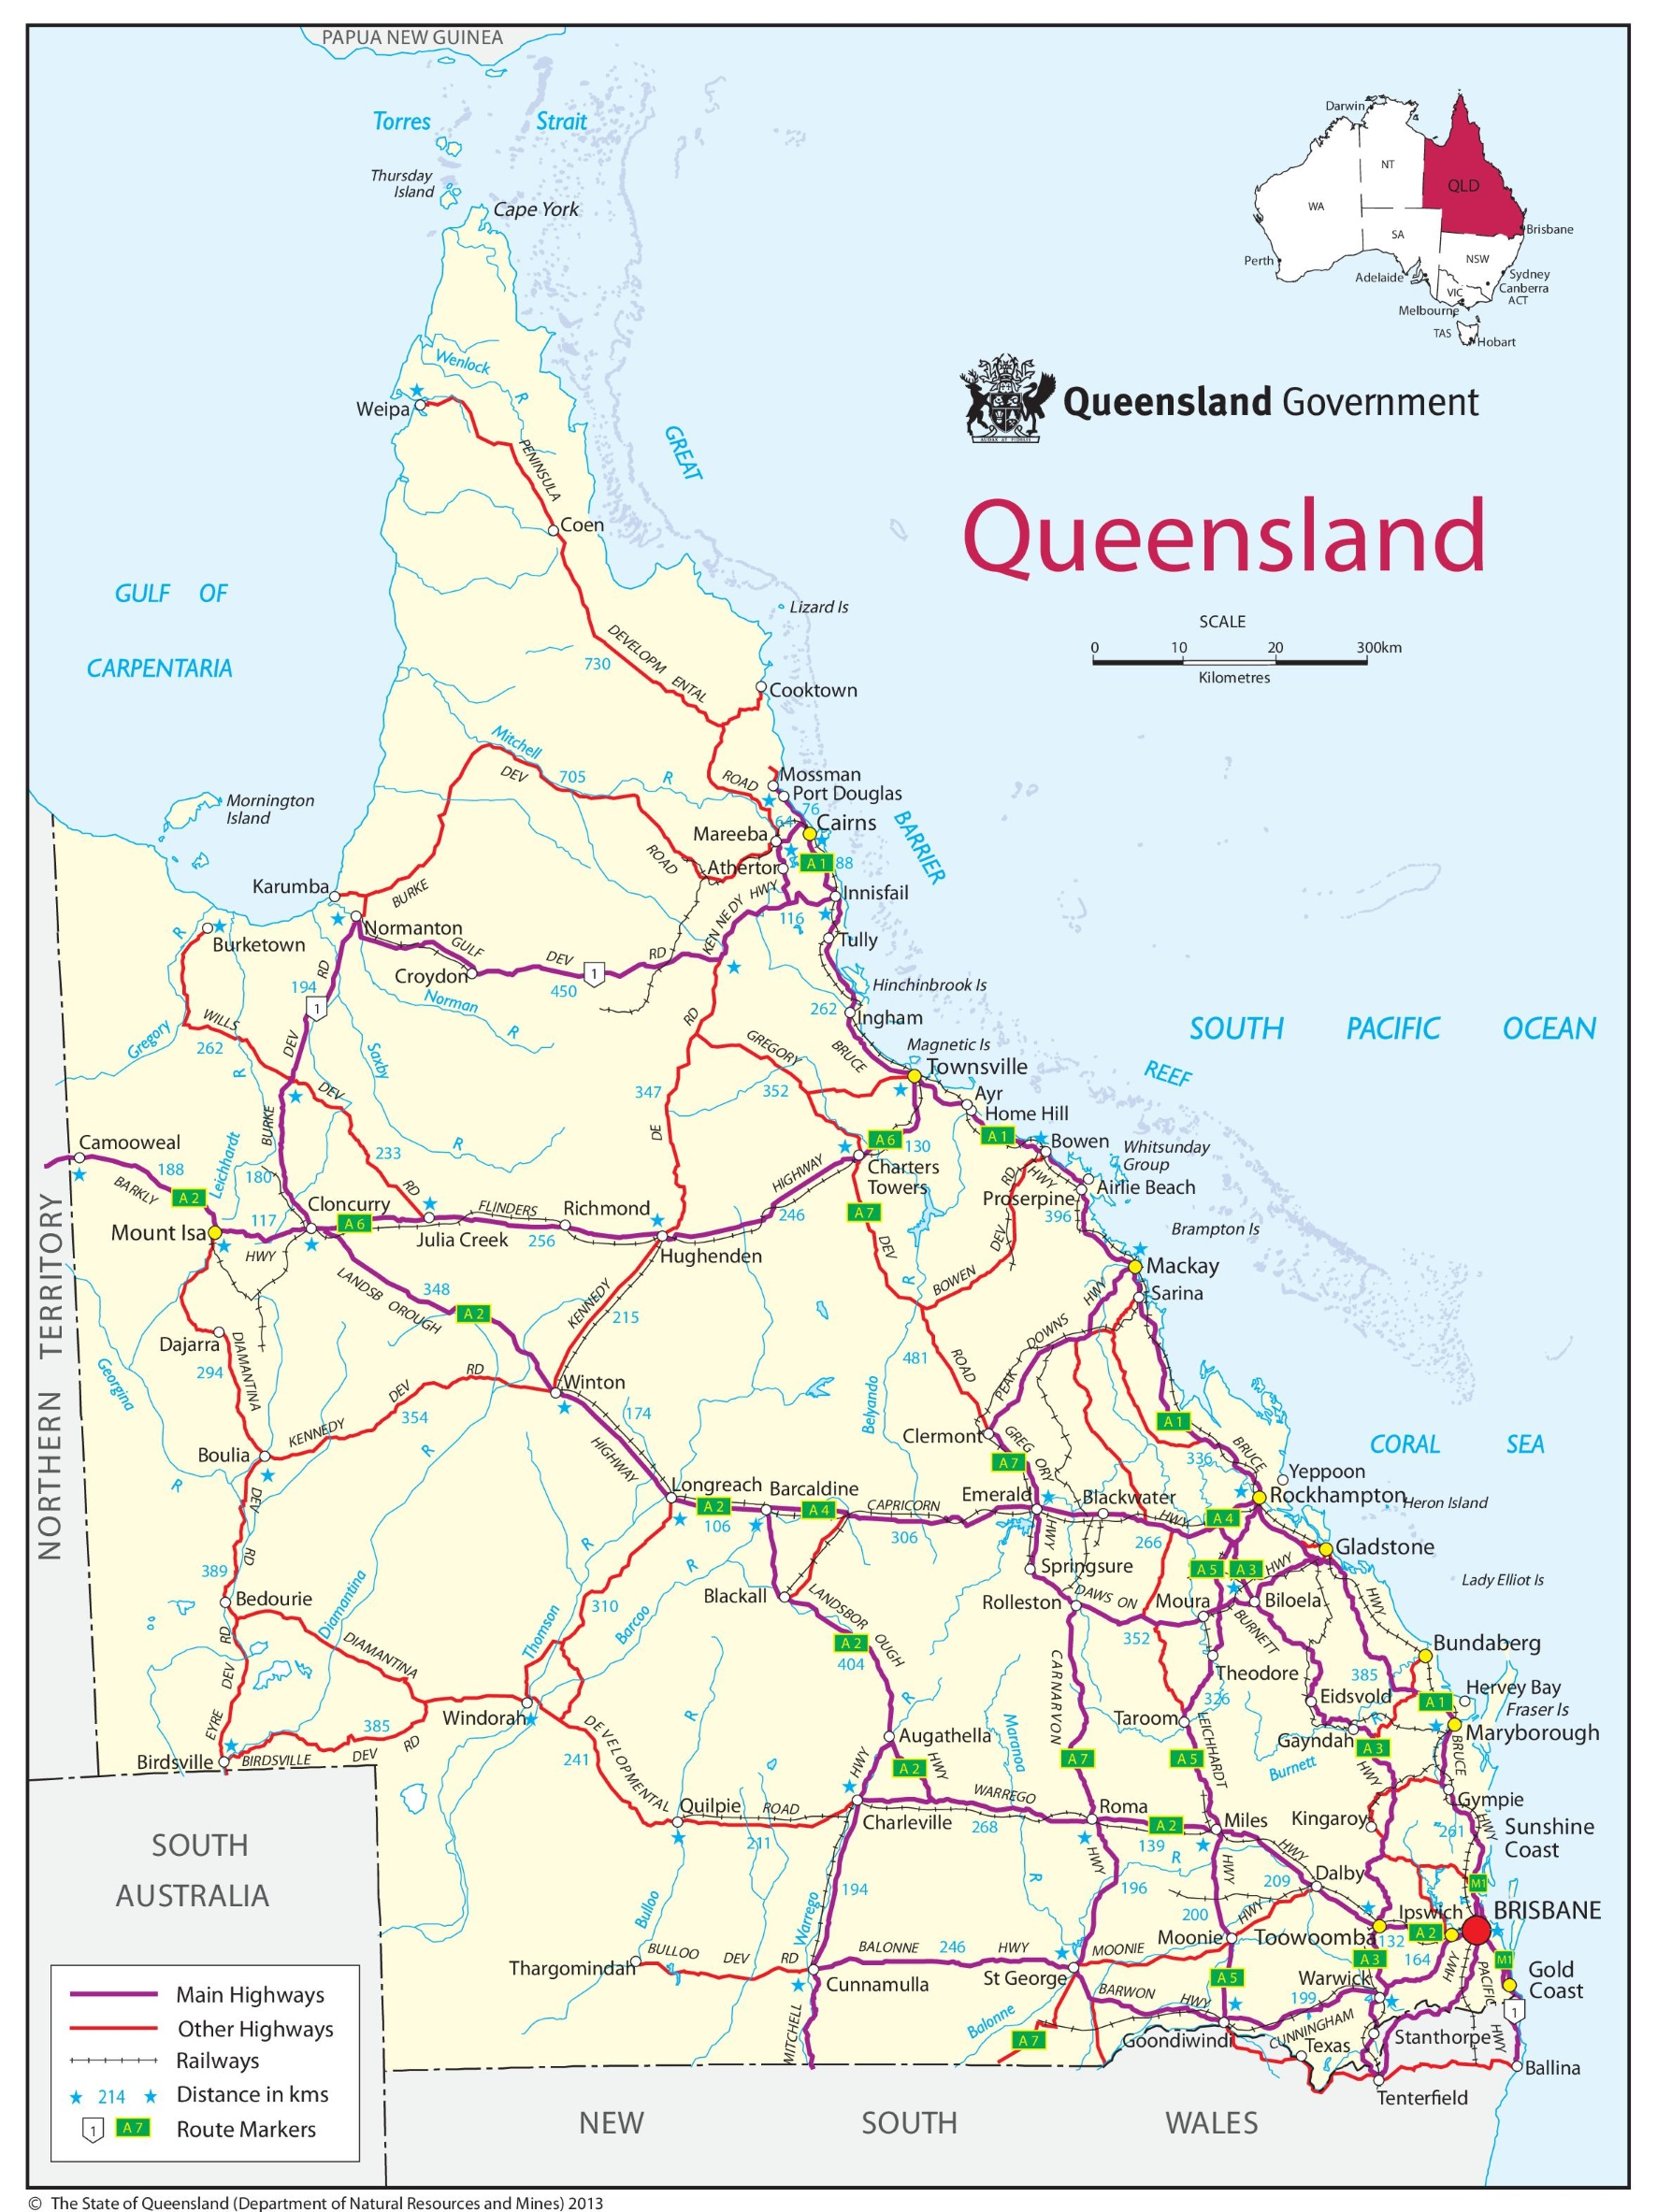 Map of the State of Queensland, Australia